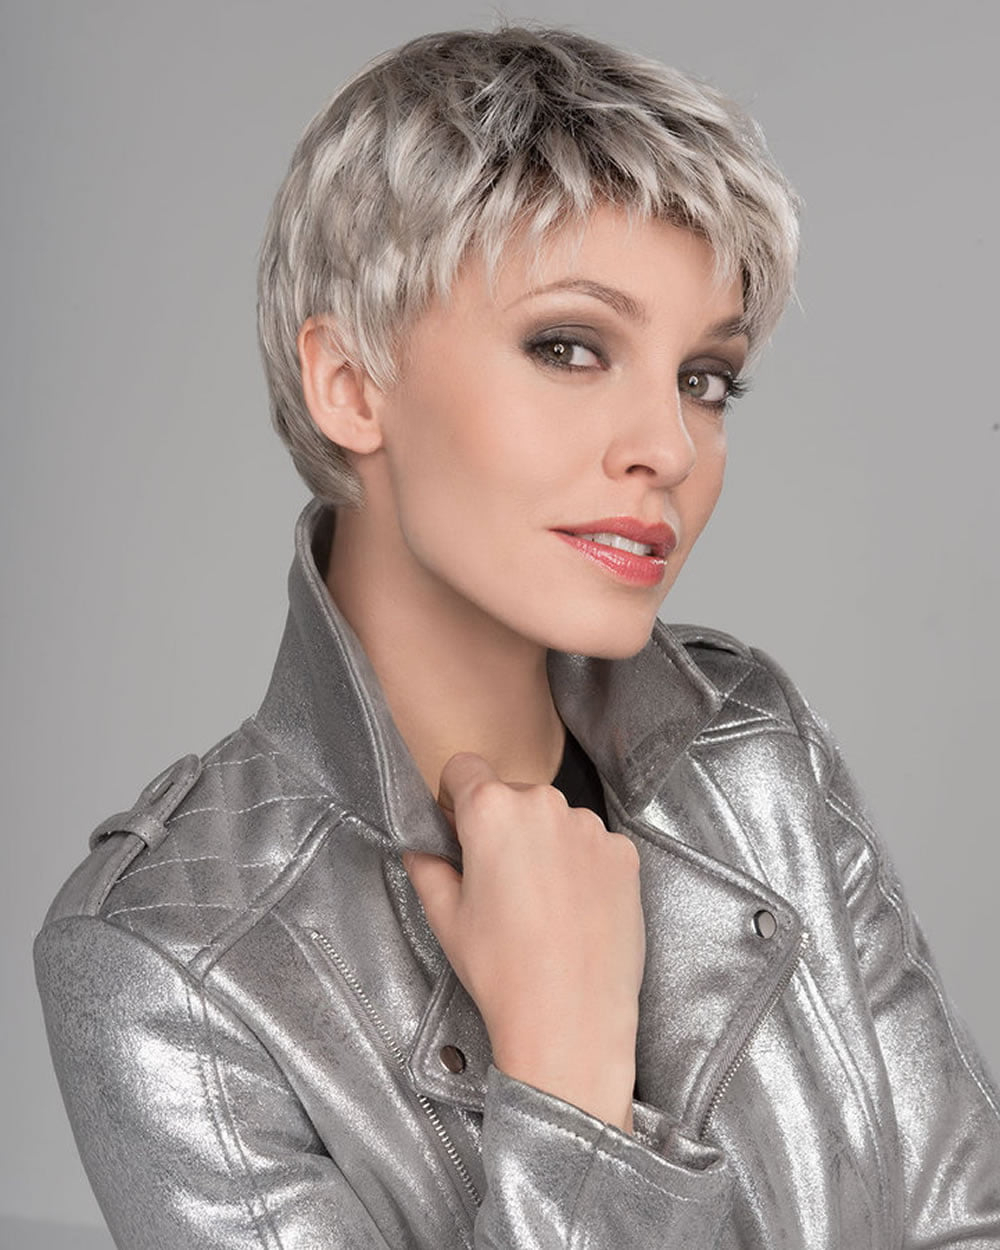 Ultra Short Hairstyles + Pixie Haircuts & Hair Color Ideas In Recent Undercut Pixie Hairstyles With Hair Tattoo (View 4 of 20)